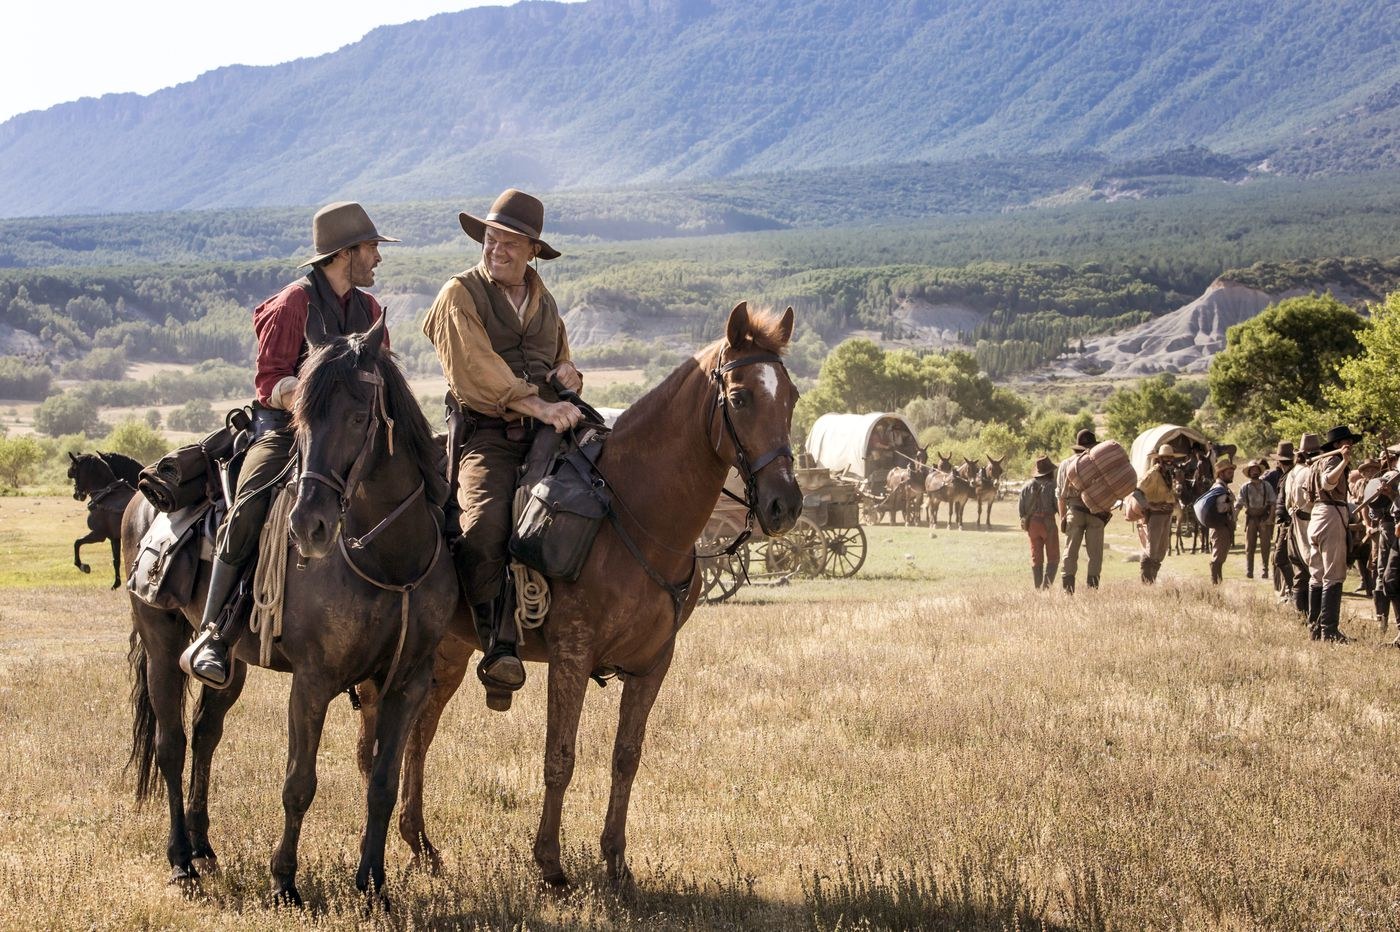 'The Sisters Brothers': A new take on the Western with fun chemistry between Joaquin Phoenix and John C. Reilly